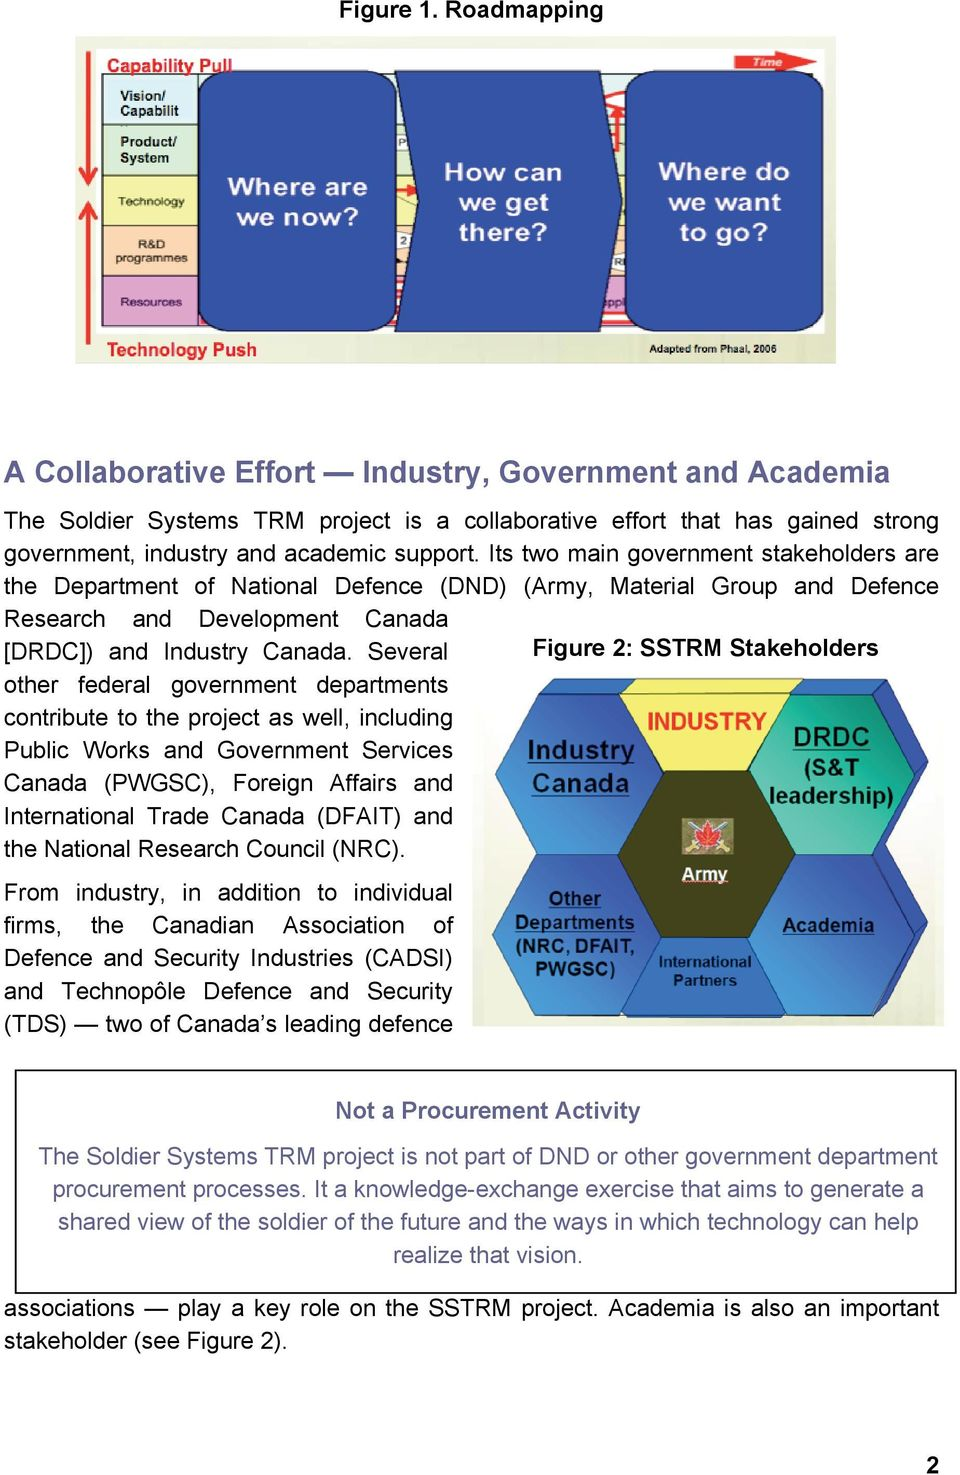 Its two main government stakeholders are the Department of National Defence (DND) (Army, Material Group and Defence Research and Development Canada [DRDC]) and Industry Canada.